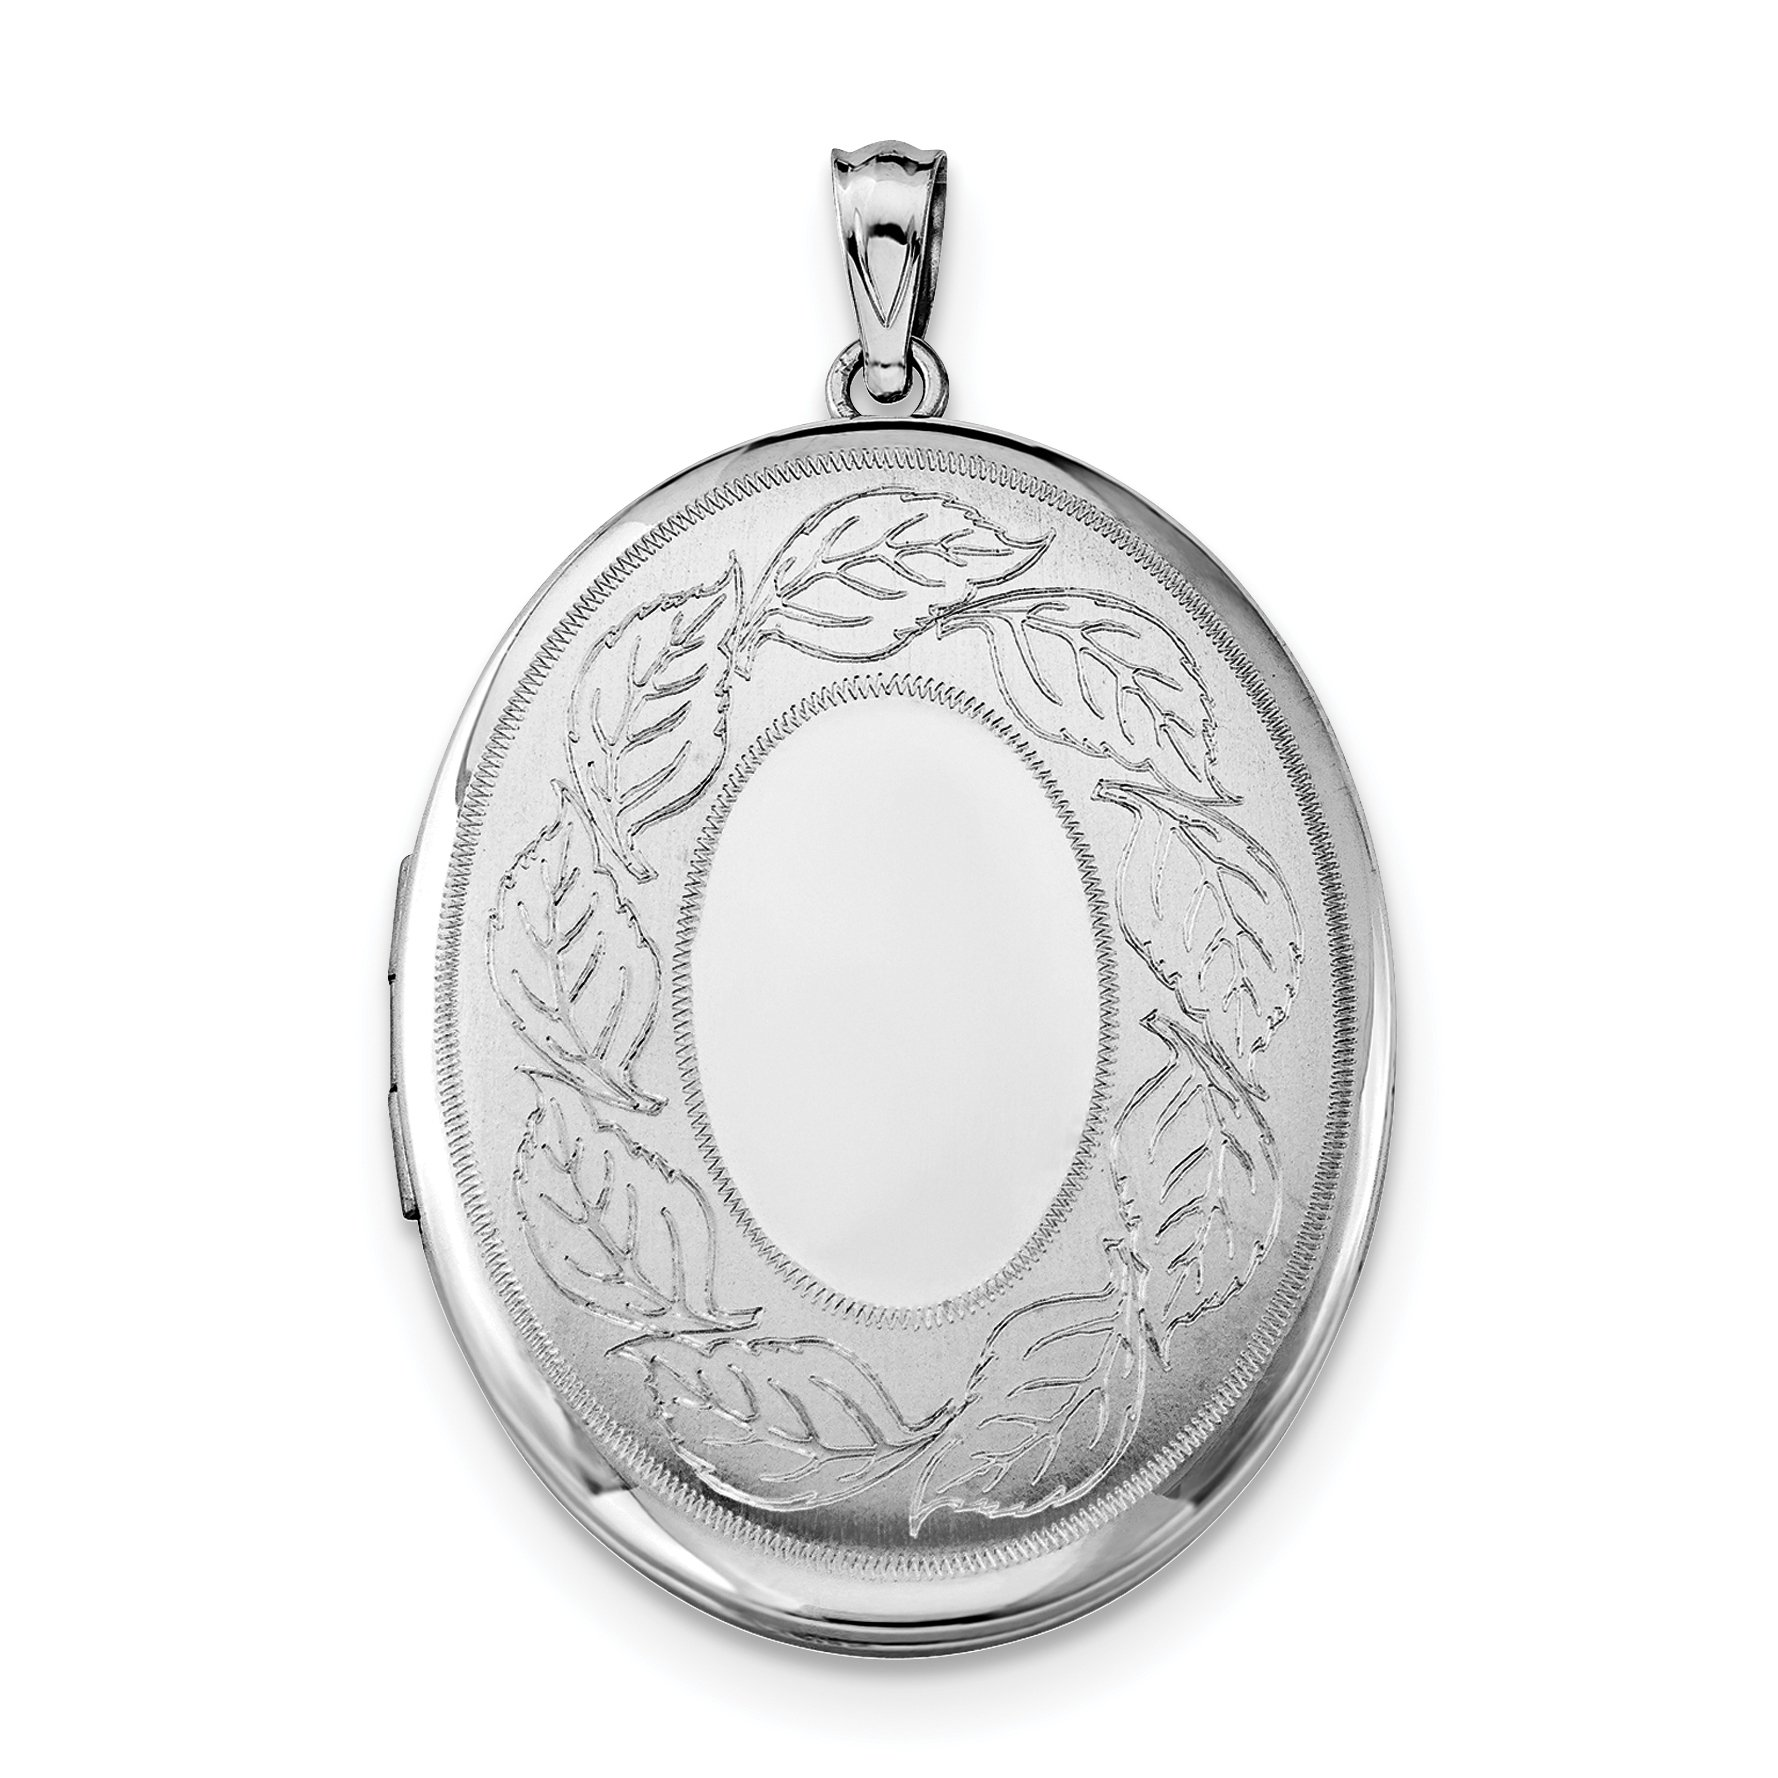 ICE CARATS 925 Sterling Silver Leaves Border 34mm Oval Photo Pendant Charm Locket Chain Necklace That Holds Pictures Fine Jewelry Gift Set For Women Heart